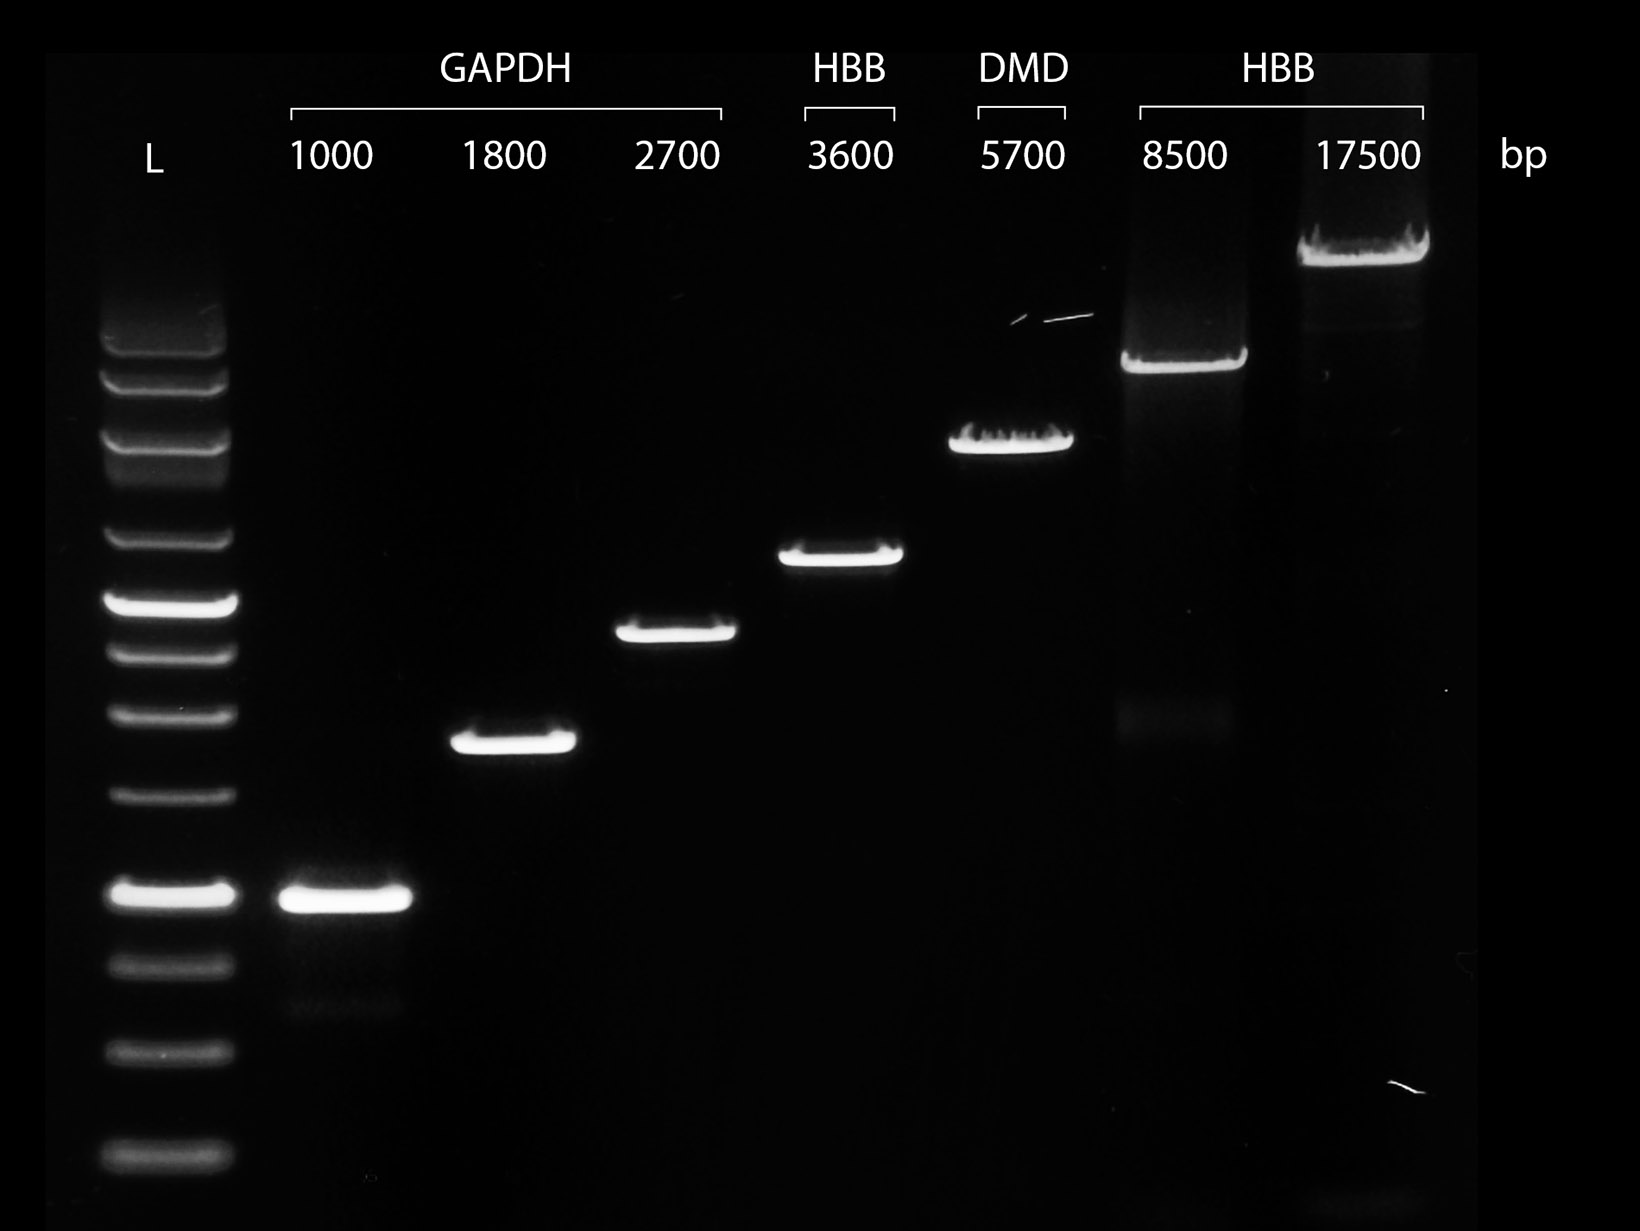 A gel image showing PCRBIO VeriFi Polymerase successfully amplifying complex genomic DNA fragments ranging in length from 1kb to 17.5kb